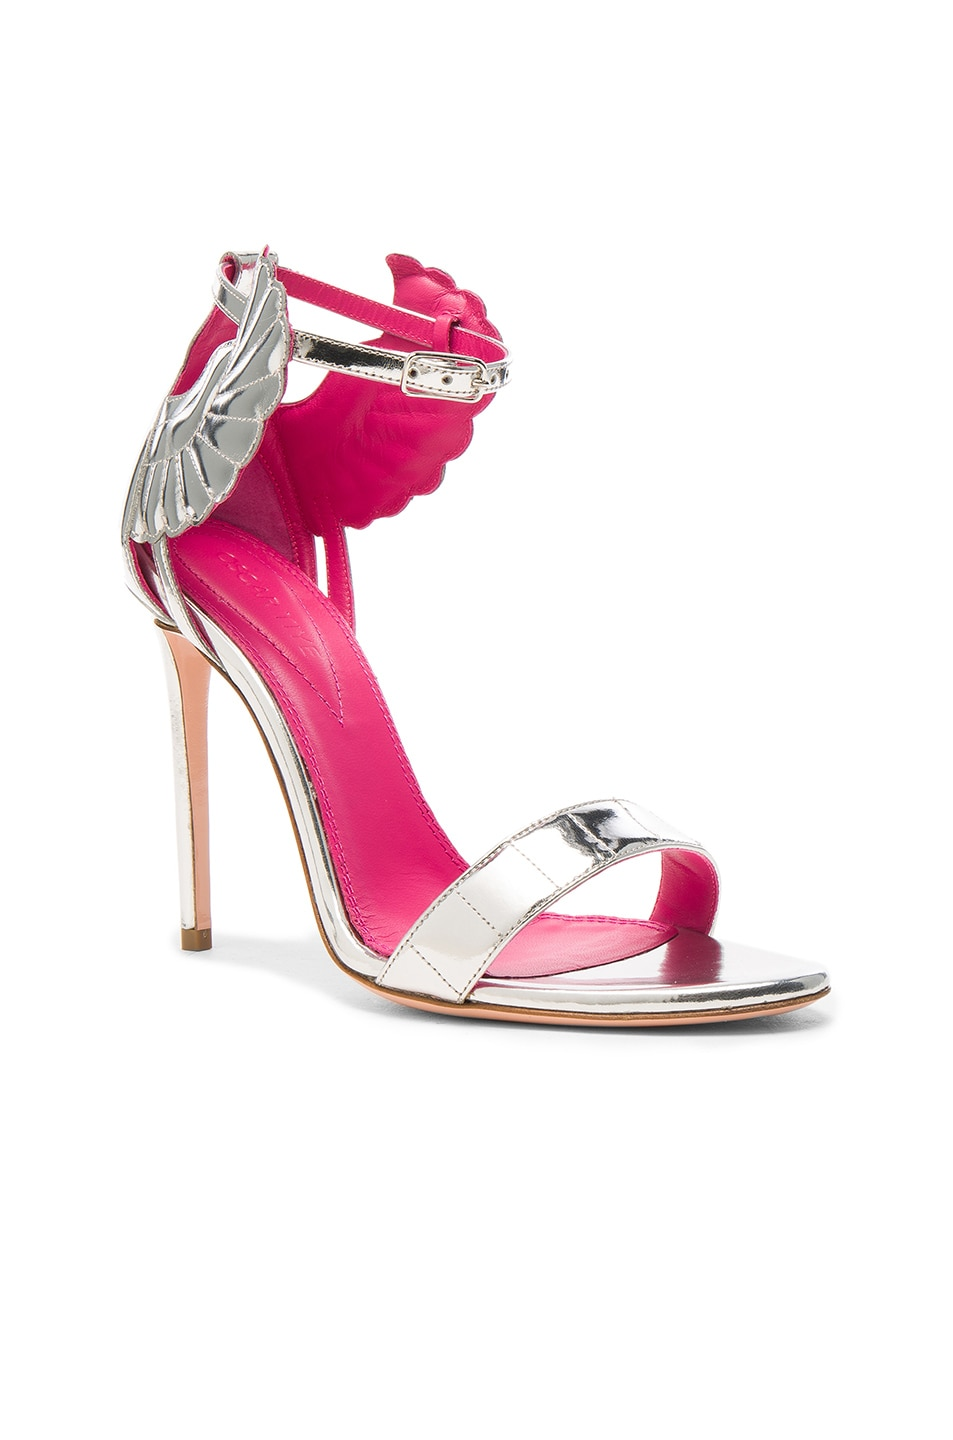 OSCAR TIYE Leather Malikah Sandals